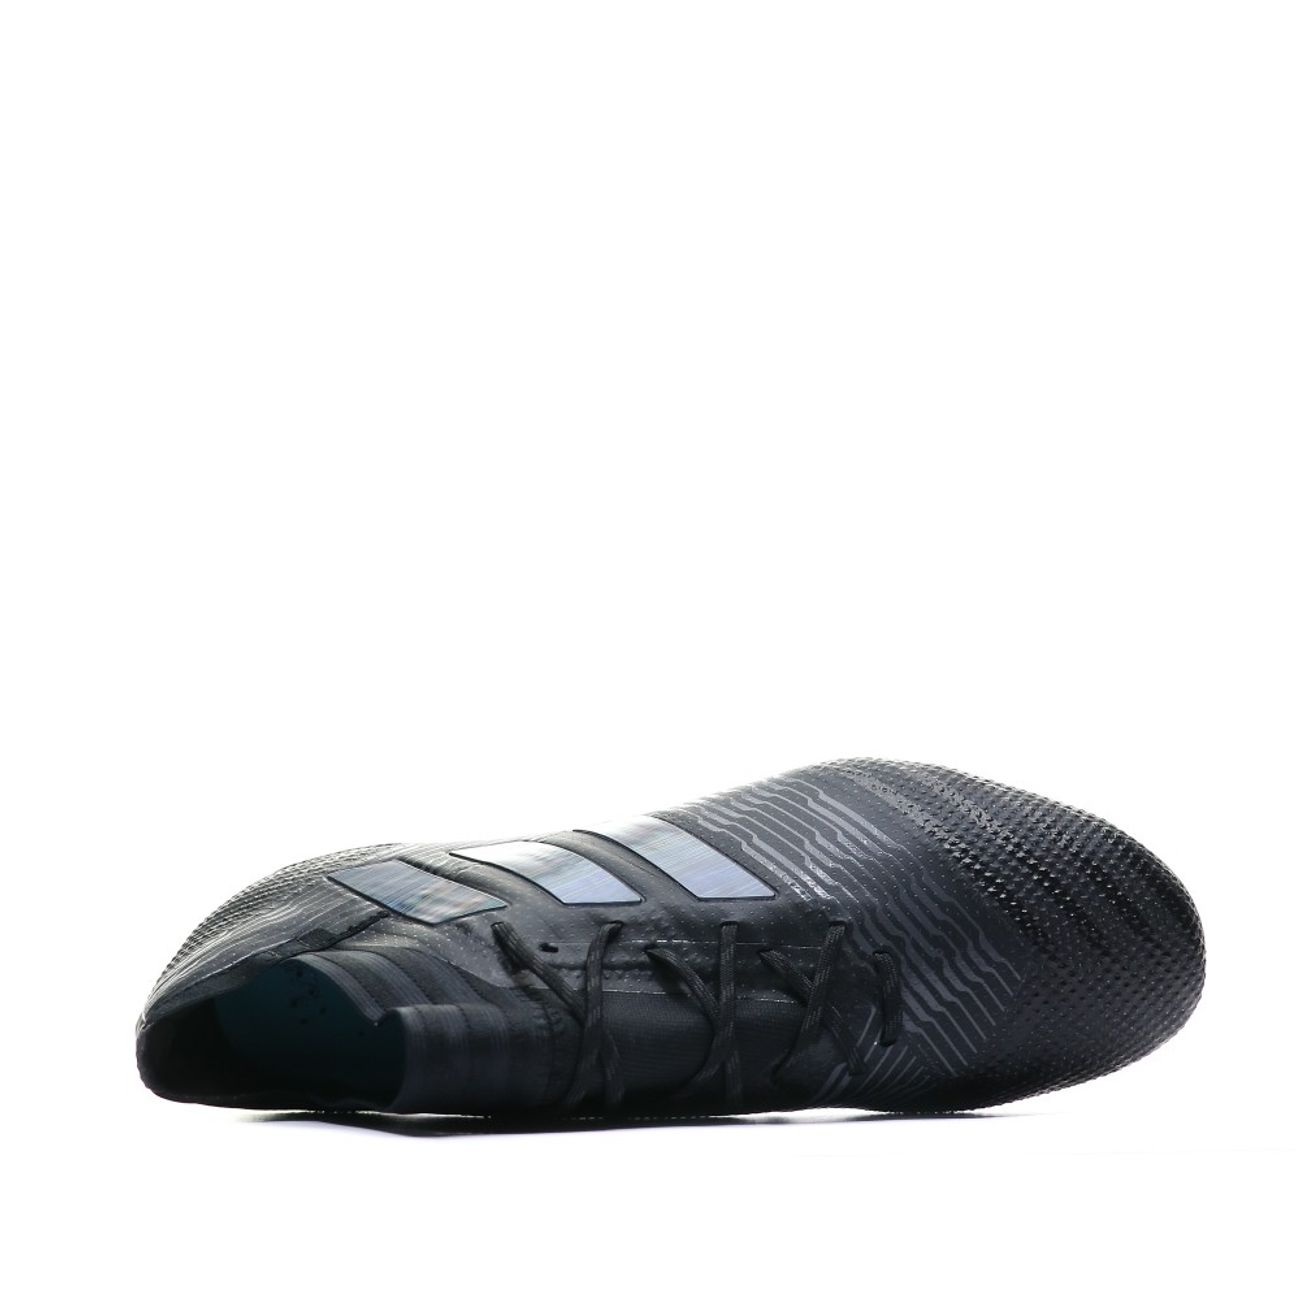 17 Chaussures Fg Homme Football Nemeziz Adidas 1 RqjLc345AS